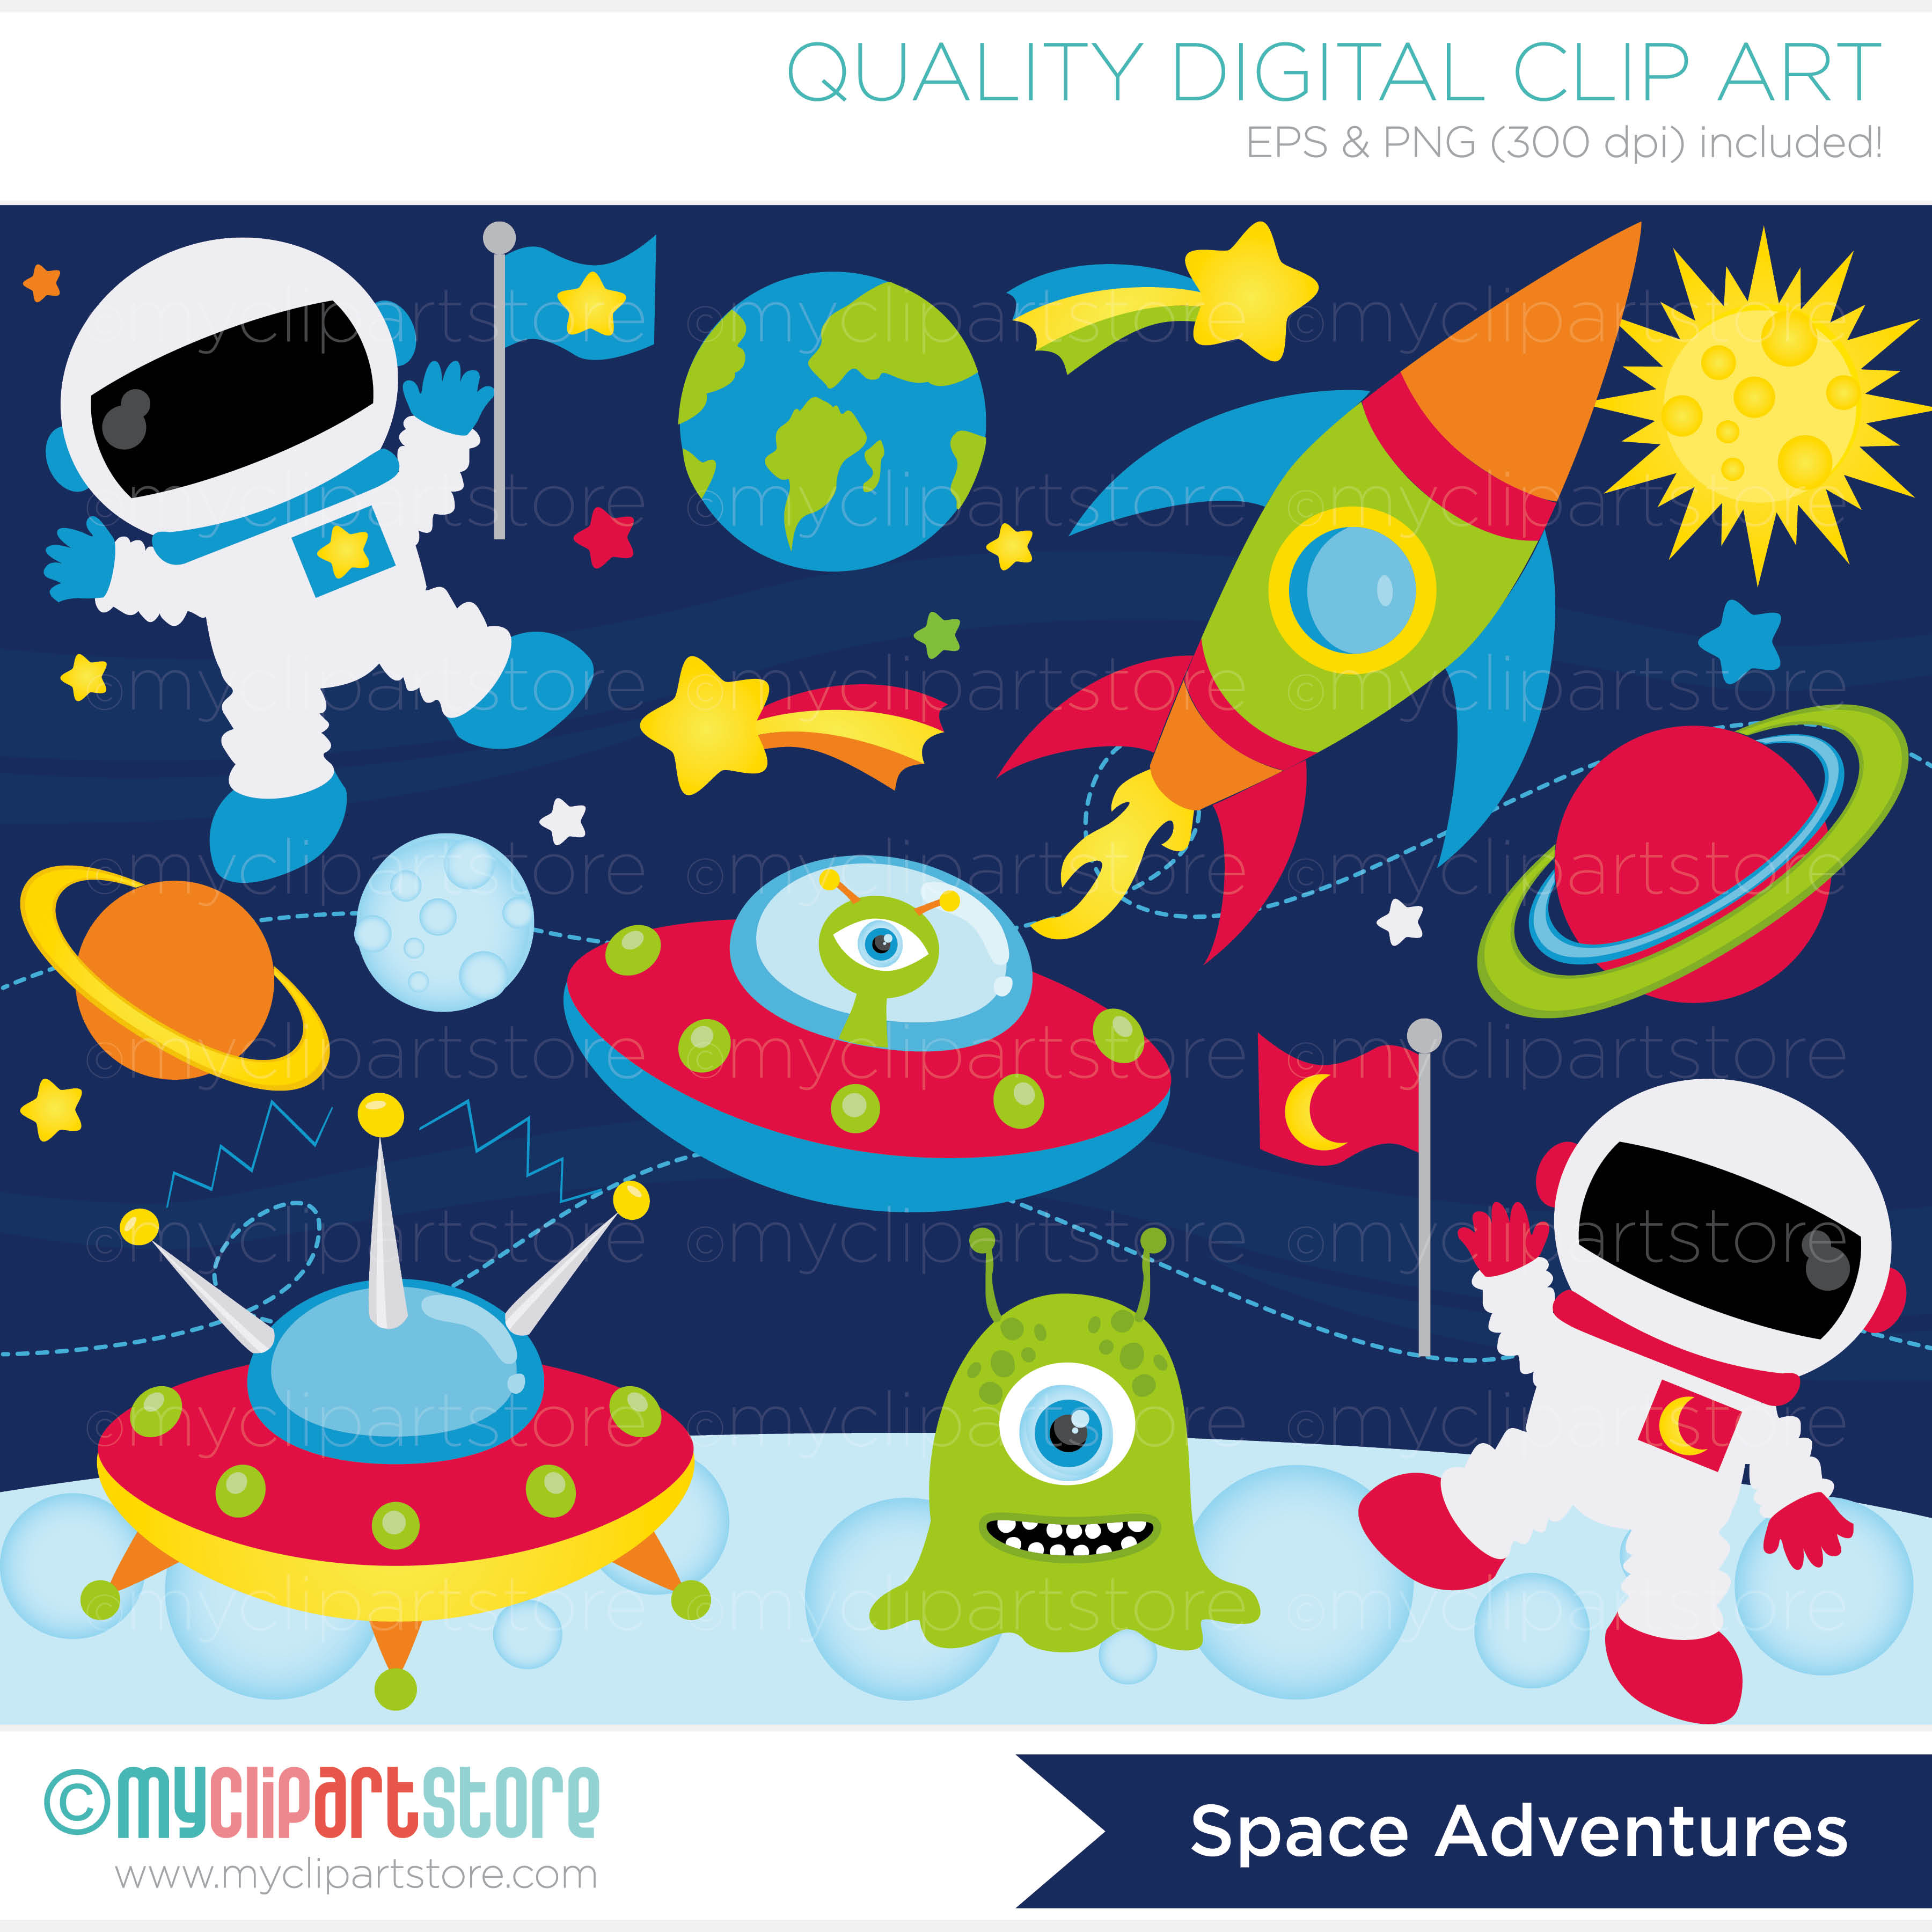 78  images about Art u0026amp; Doodles - Space on Pinterest | Astronauts, Spaceships and Digital stamps